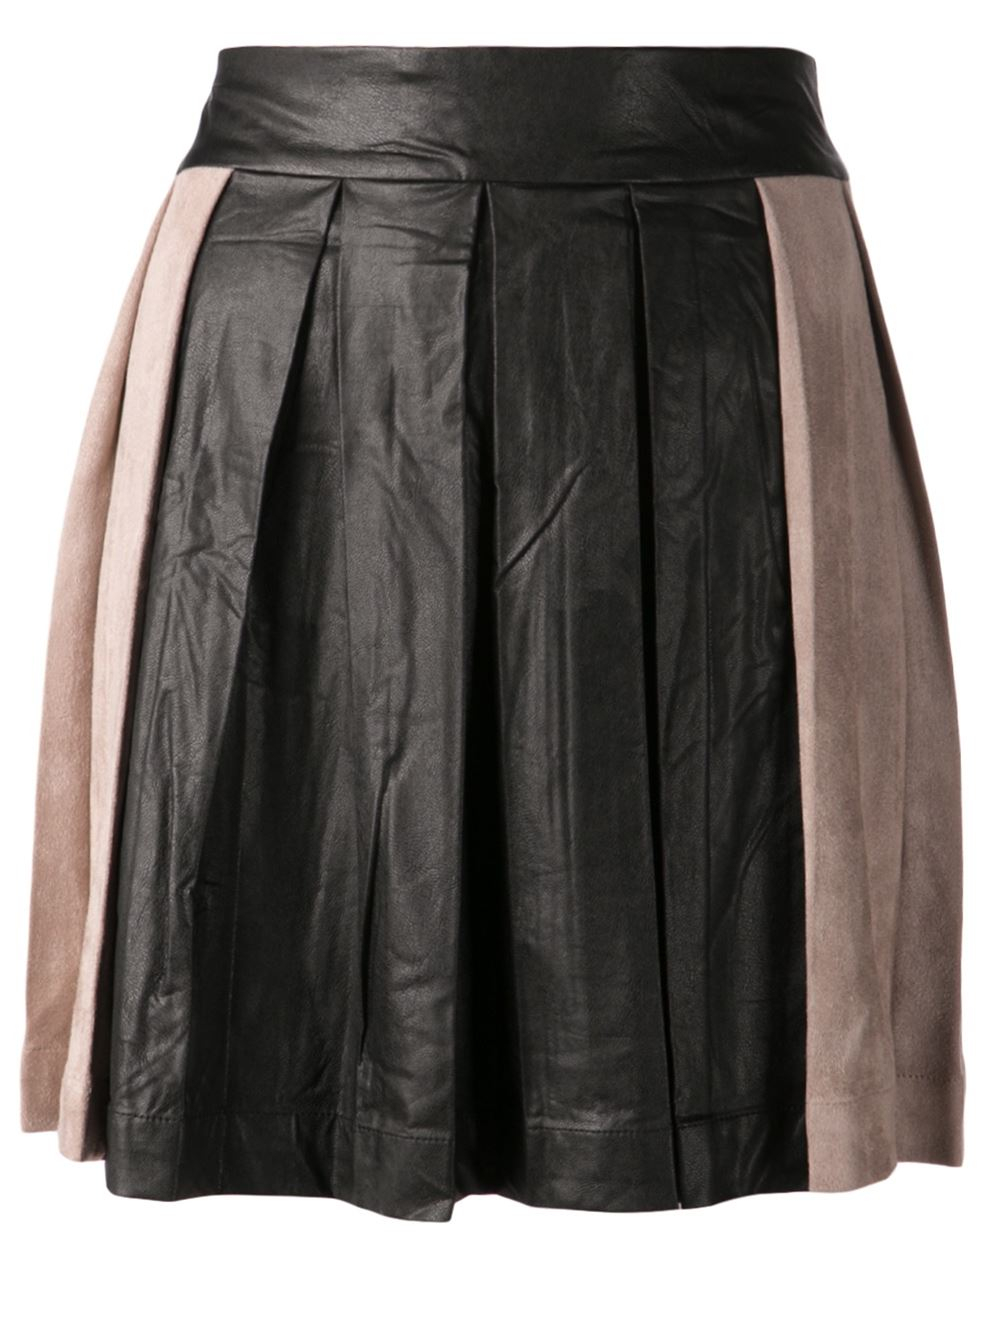 shades of grey by cohen box pleated skirt in